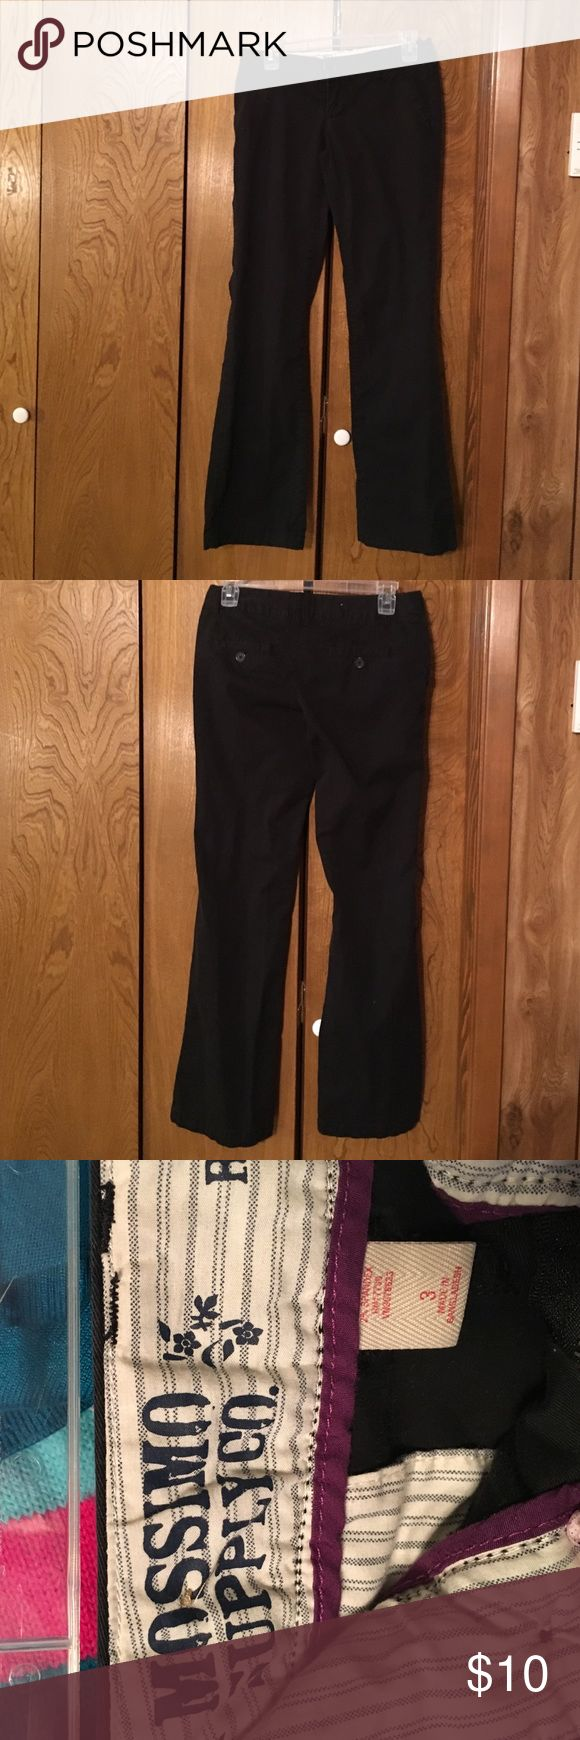 Mossimo black khakis Mossimo black khakis. Size 3. Only wore a few times Mossimo Supply Co Pants